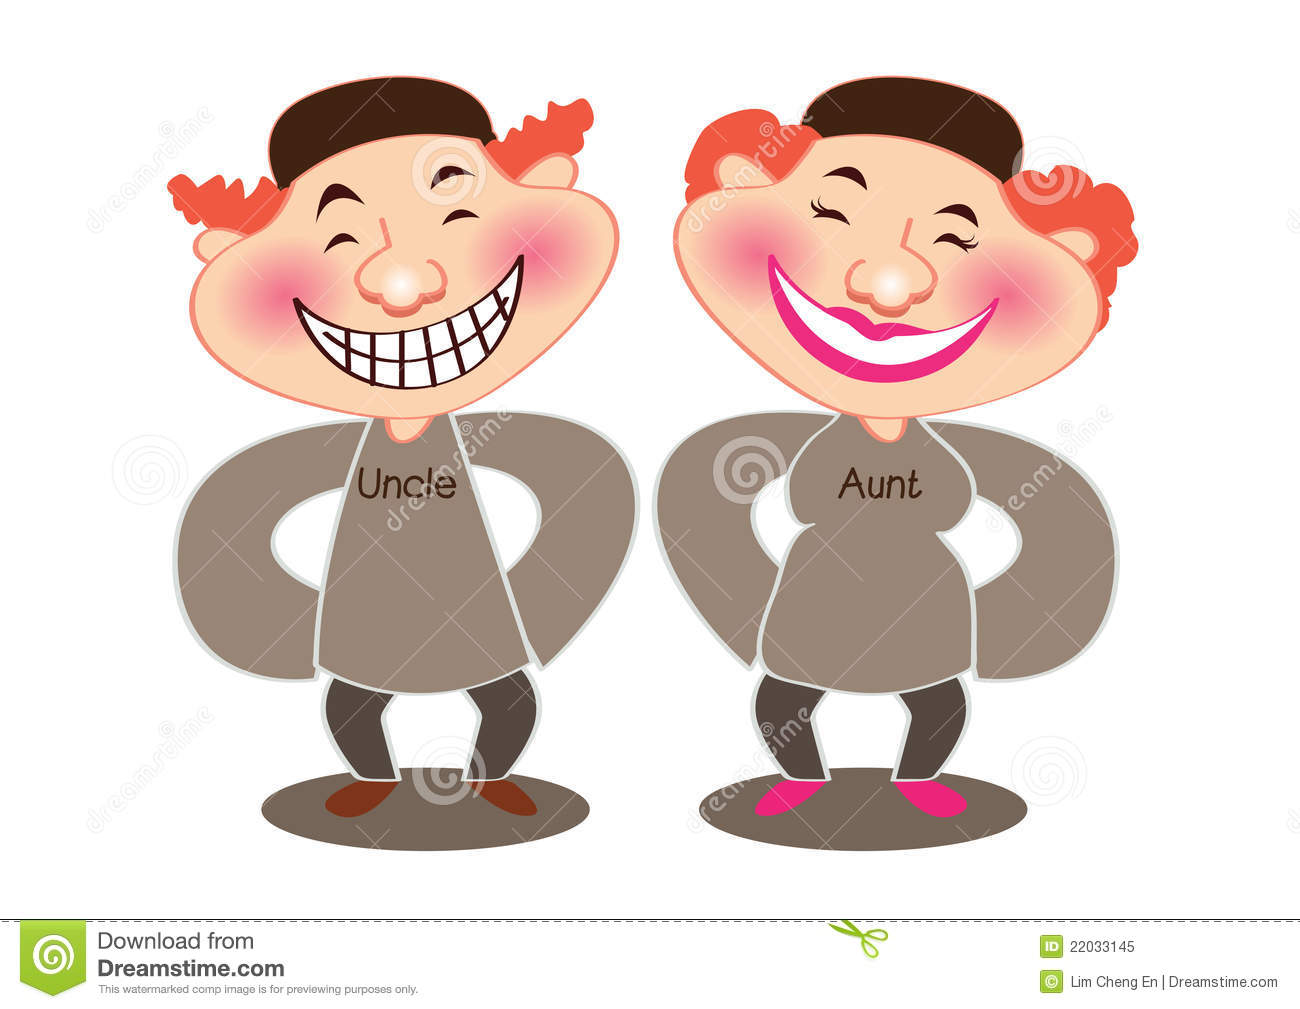 Aunt clipart uncle.  collection of and